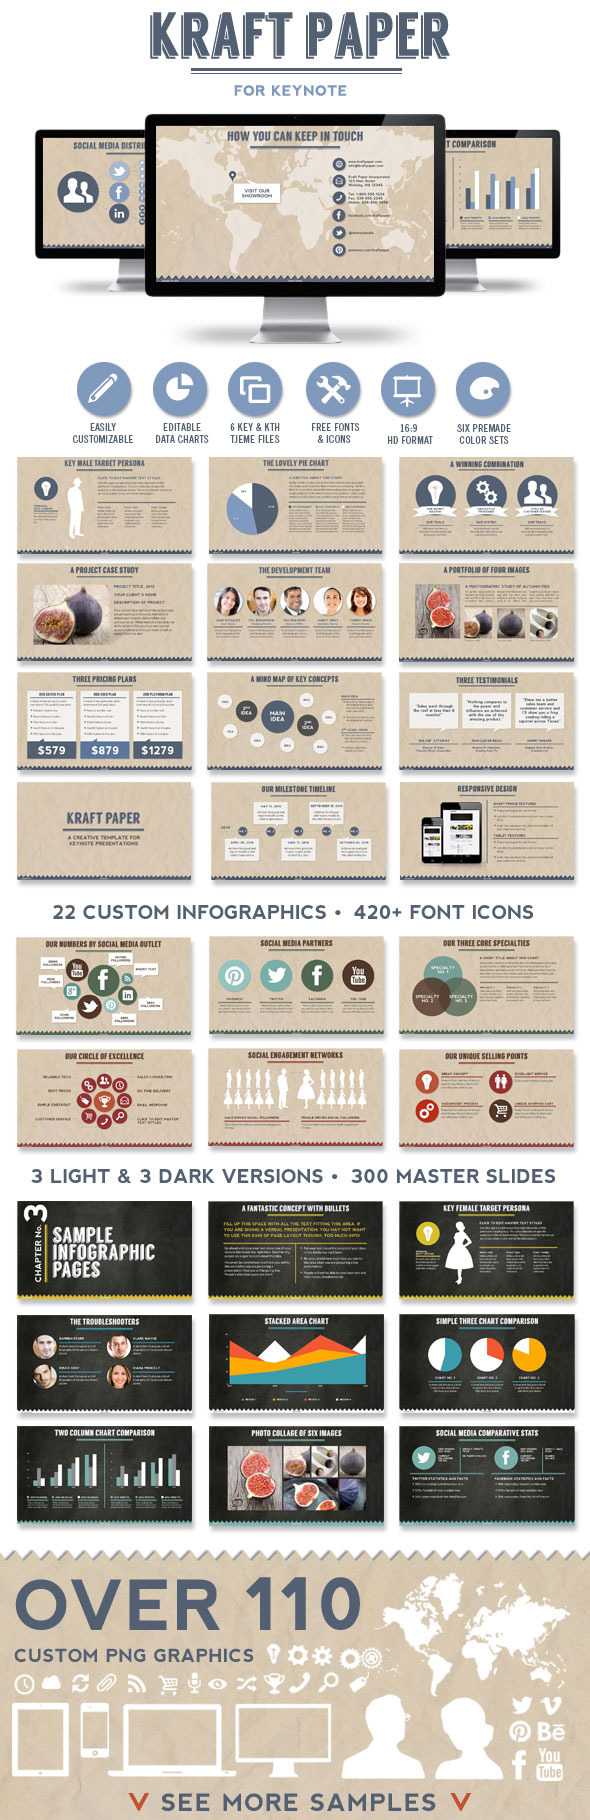 Kraft Paper Keynote Presentation Template - Creative Keynote Templates